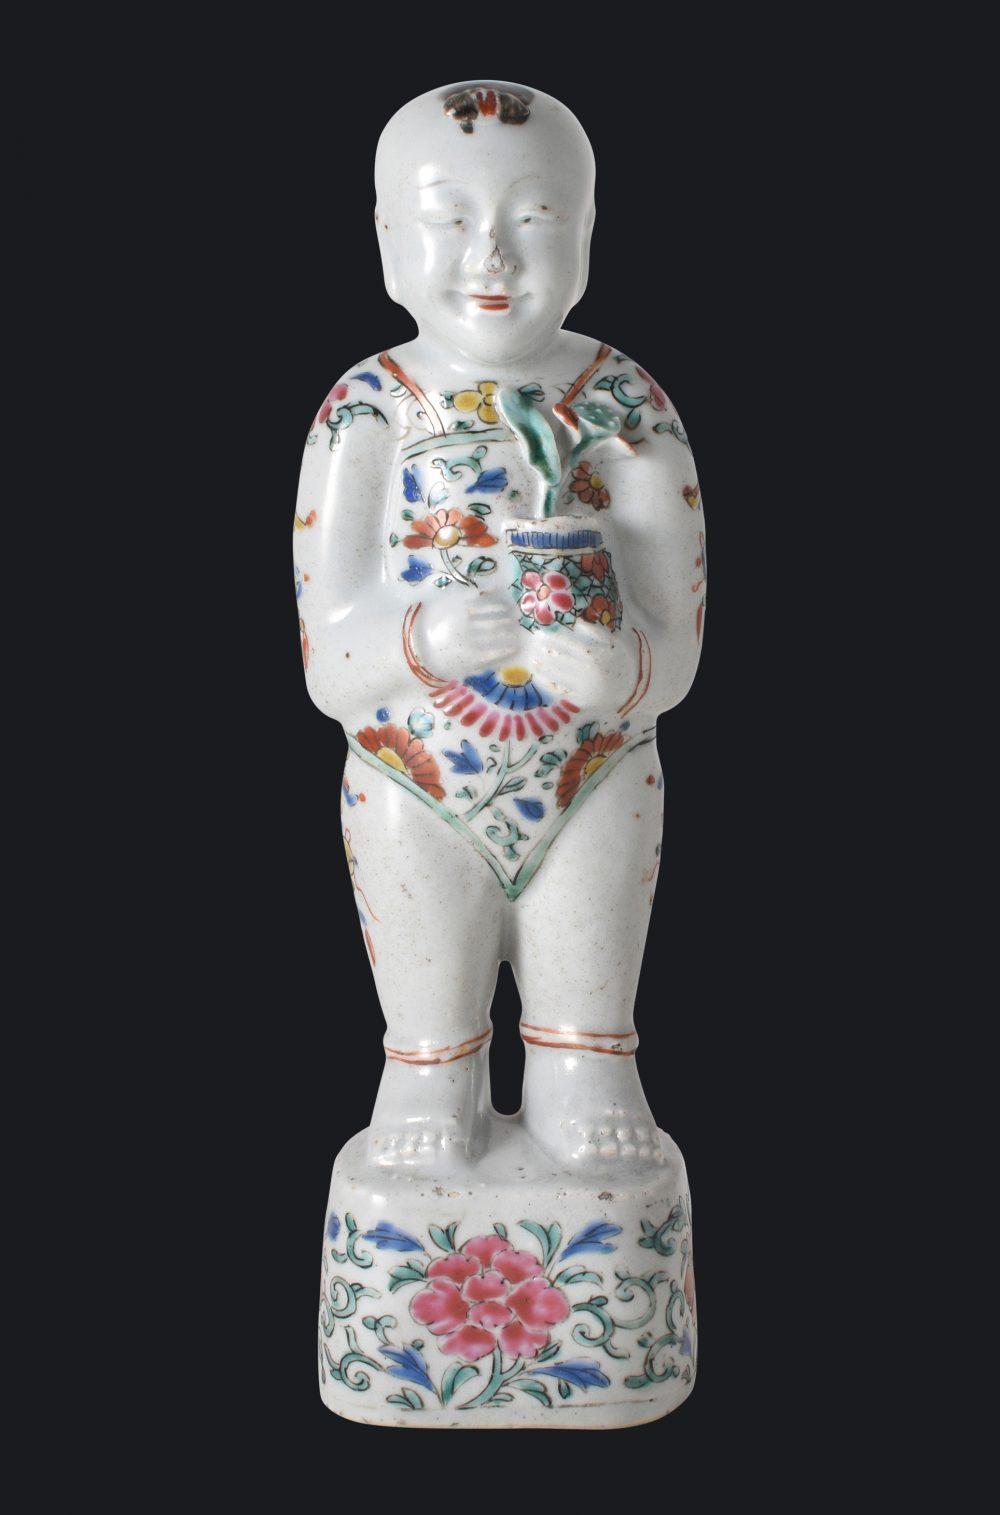 Famille rose Porcelain Yongzheng (1723-1735)/ early Qianlong period (1736-1795), China